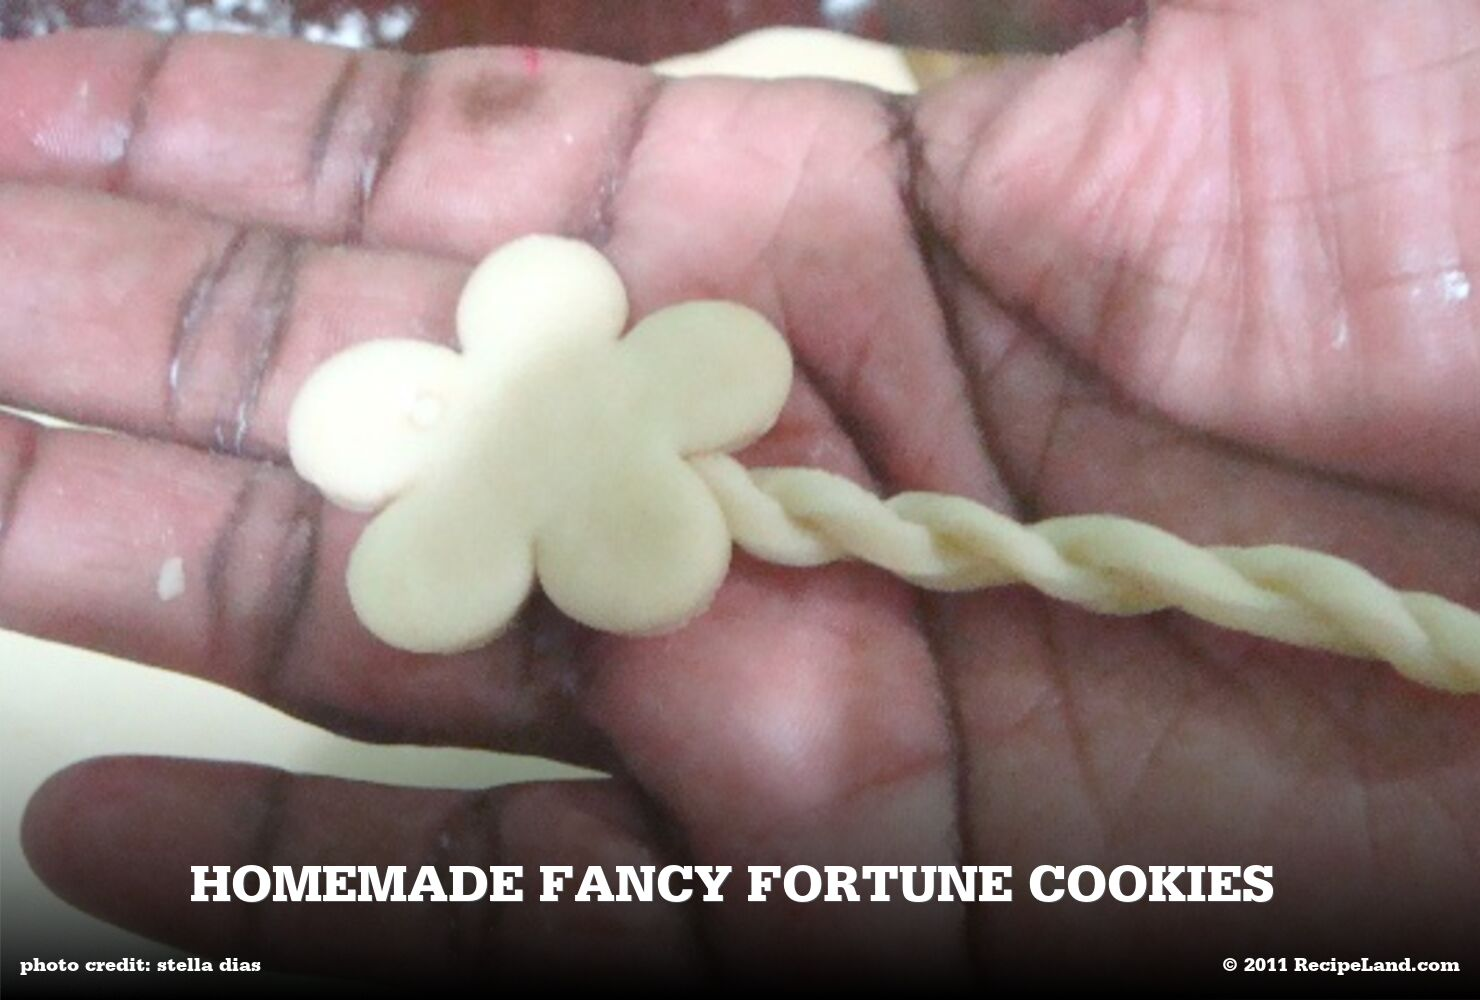 Homemade Fancy Fortune Cookies